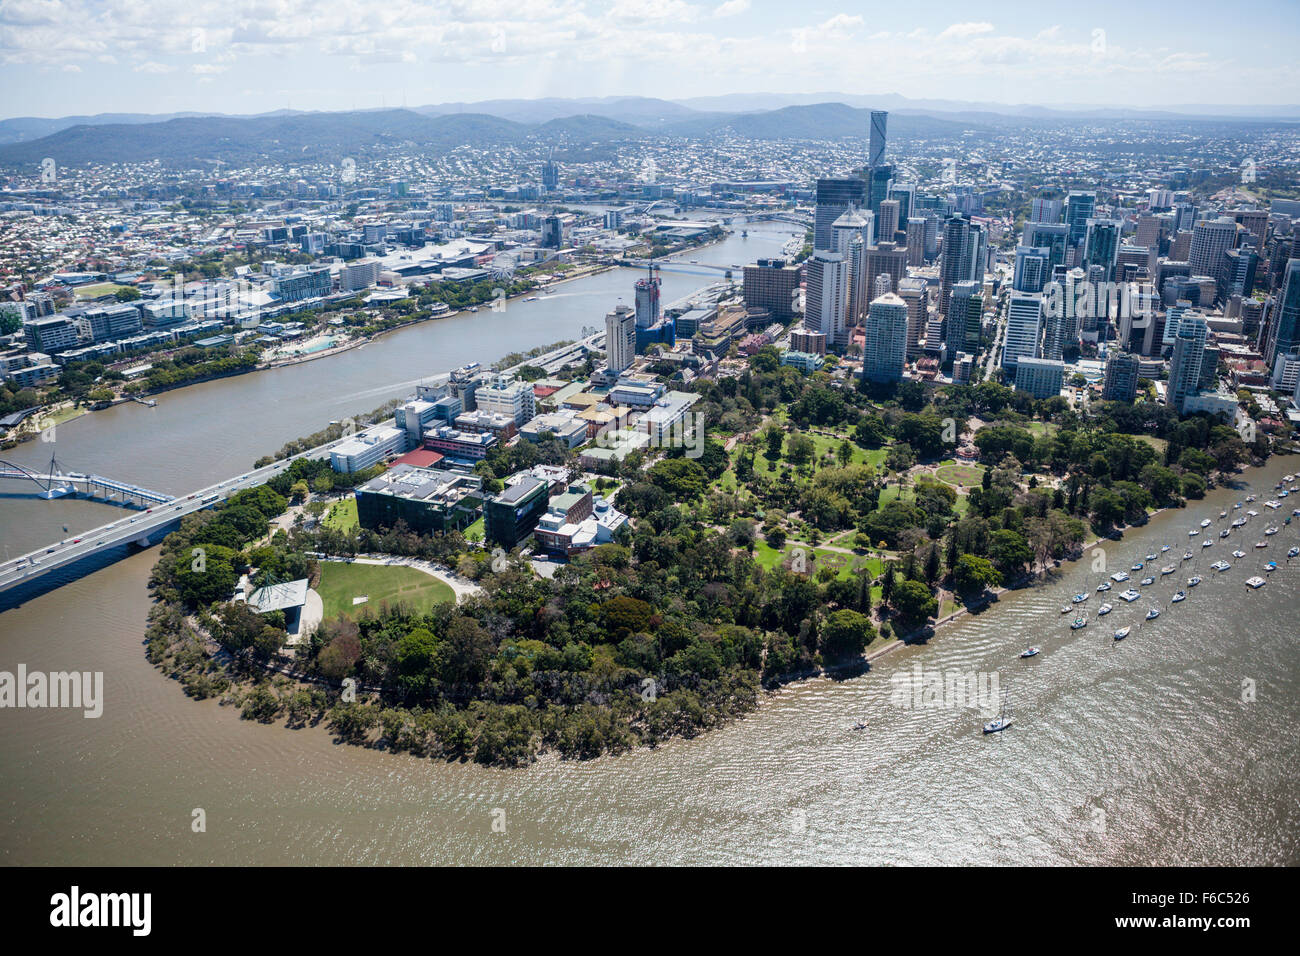 Skyline of Brisbane, Queensland, Australia - Stock Image